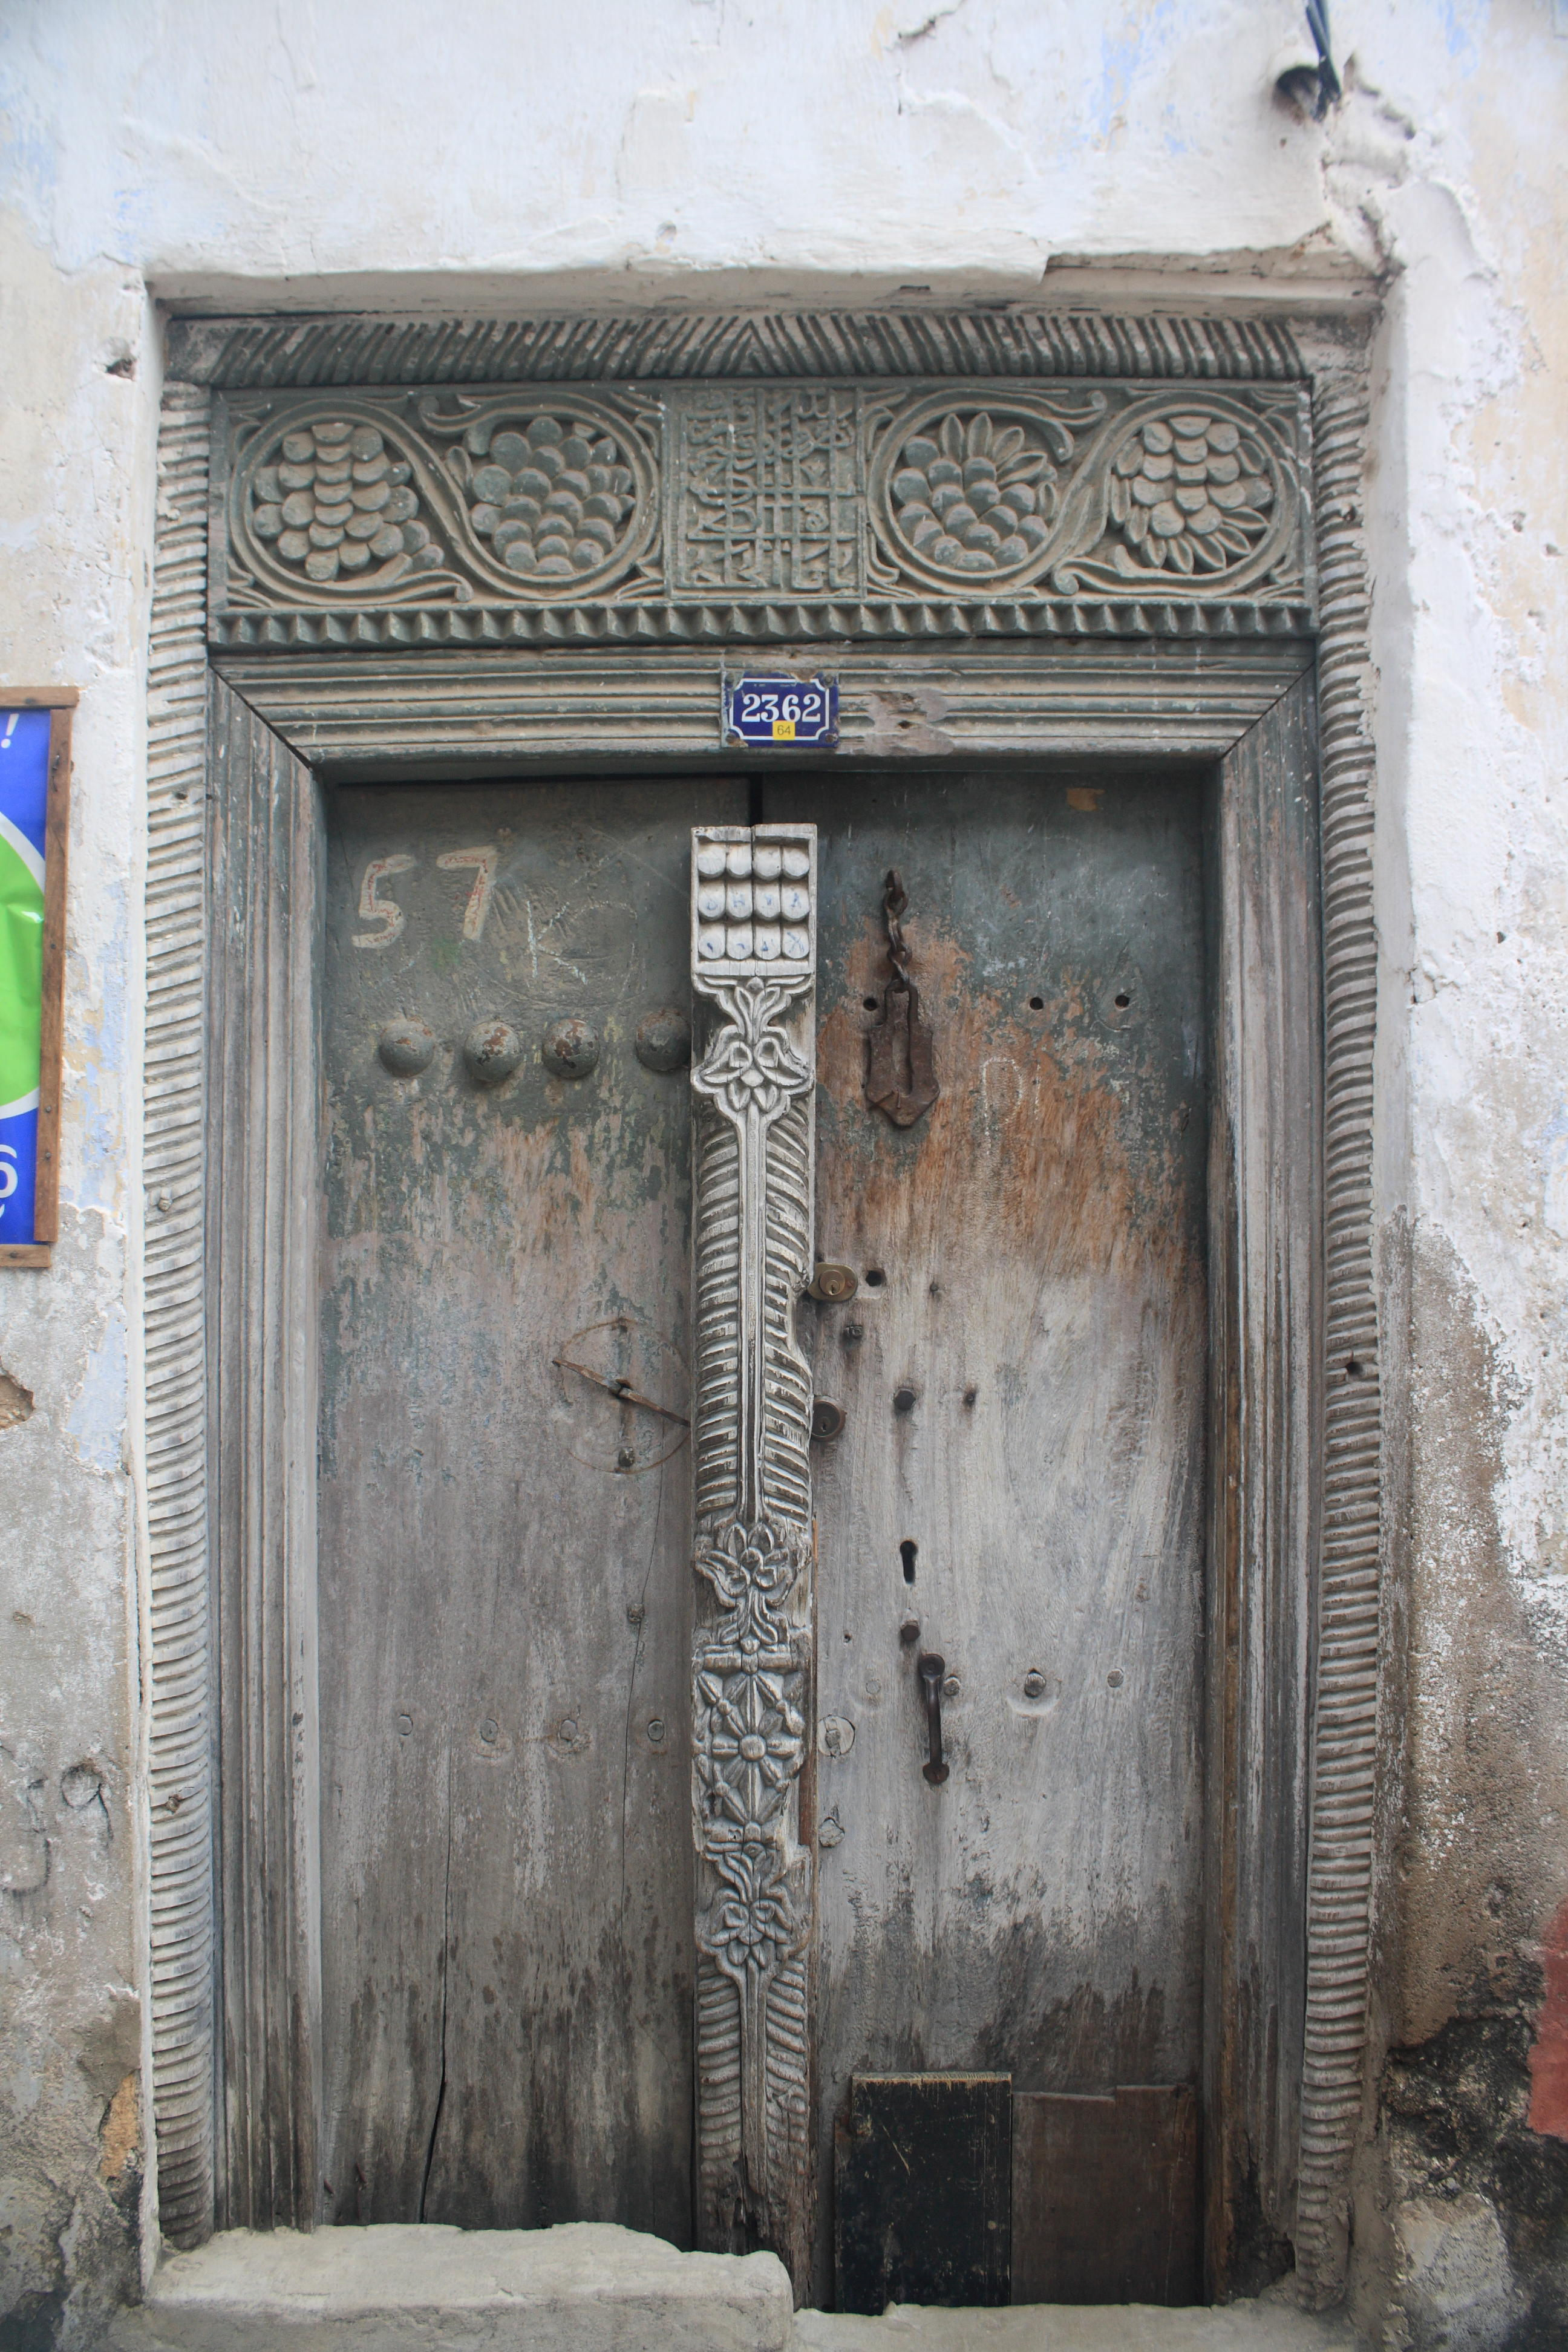 A warped zanzibar door with intricate beam carvings